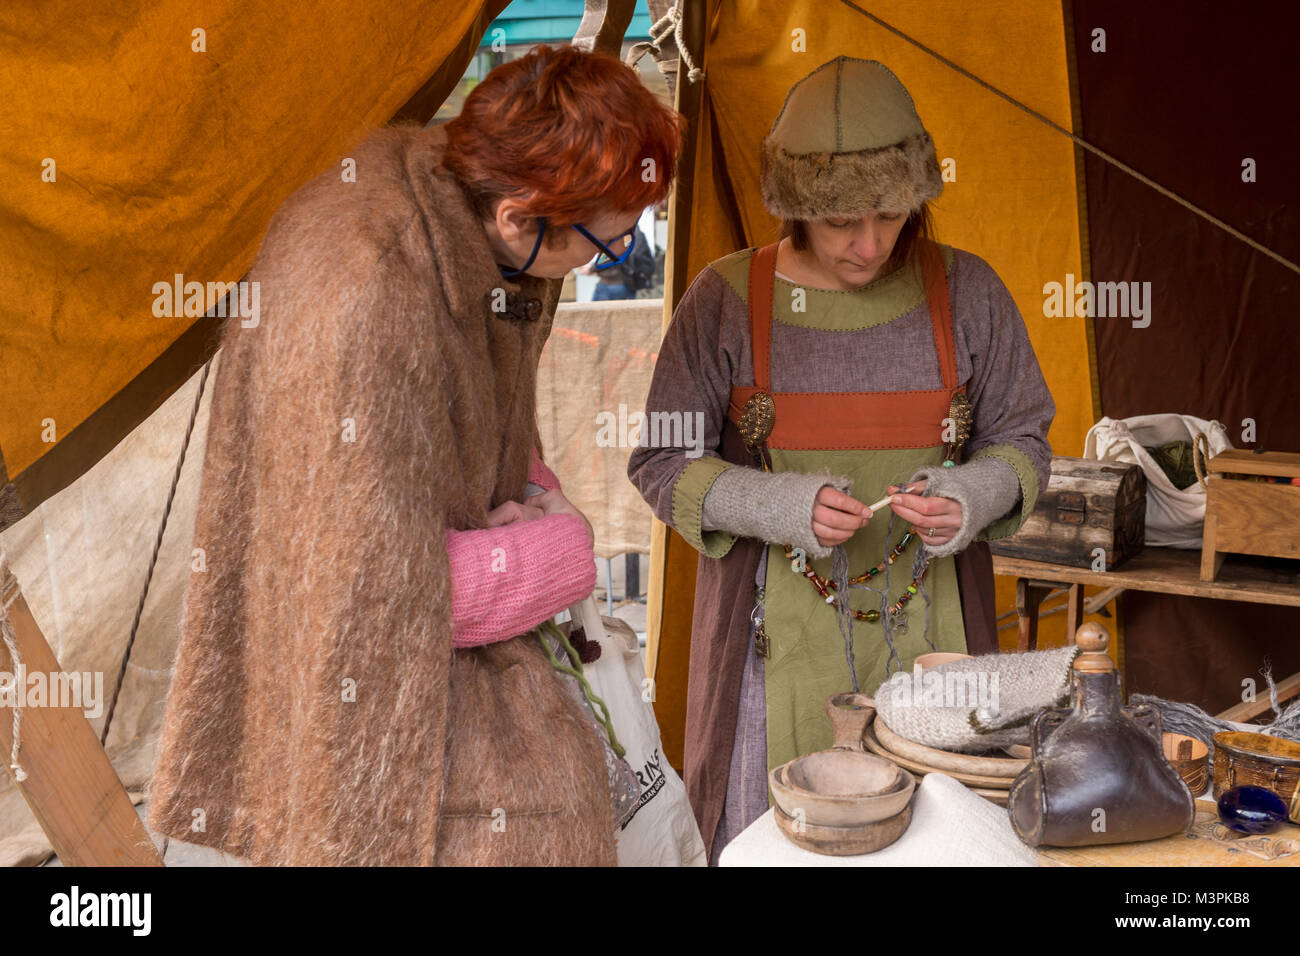 York, UK, 12th February 2018, Two women together, one dressed as a Viking, at the annual Jorvik Viking Festival. - Stock Image